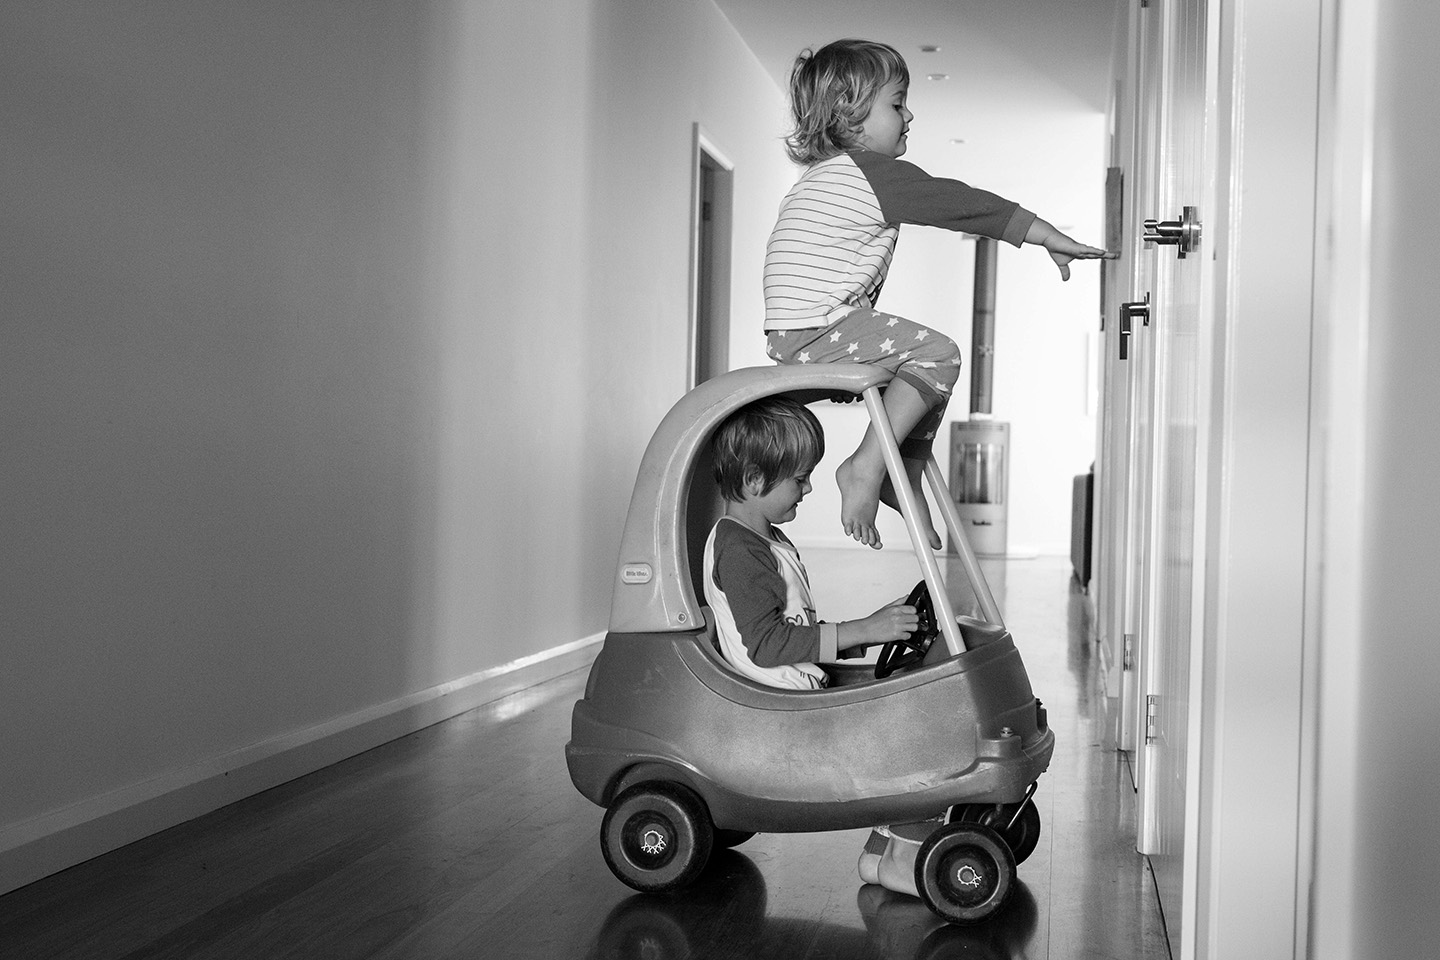 b&w image of two brothers, one isin a plastic car and the other is seatted on the top and trying to open the cupboard